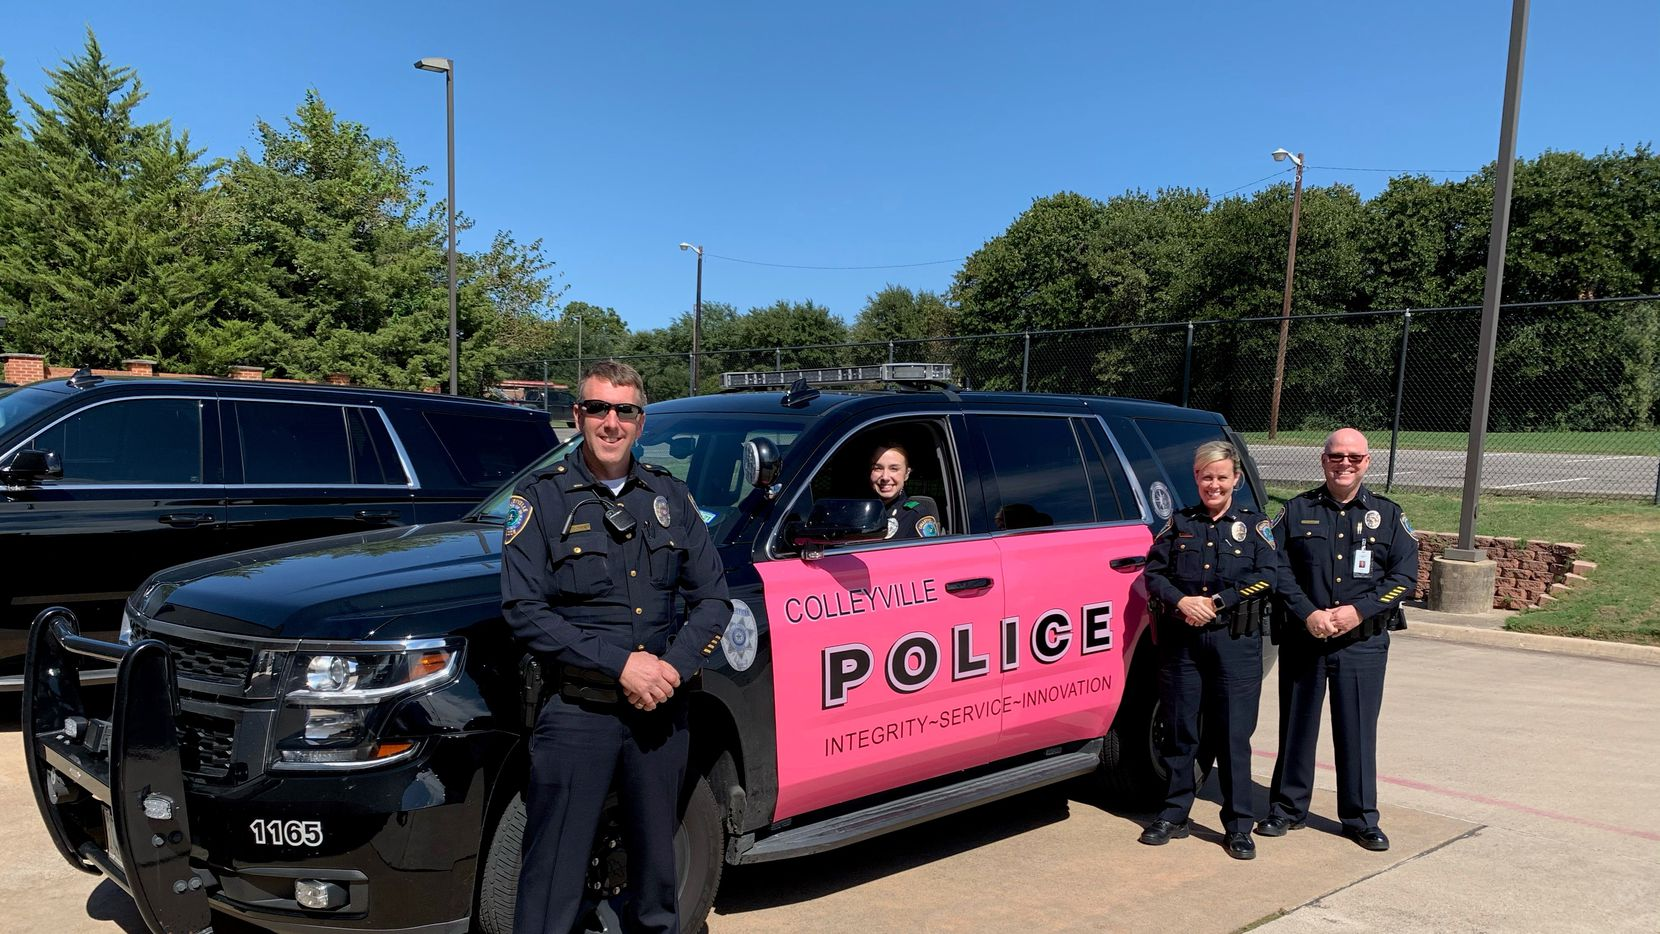 In October, a Colleyville police car sported a pink finish in support of Breast Cancer Cancer Awareness Month. To start the new year, police warned against scams targeting seniors and others.